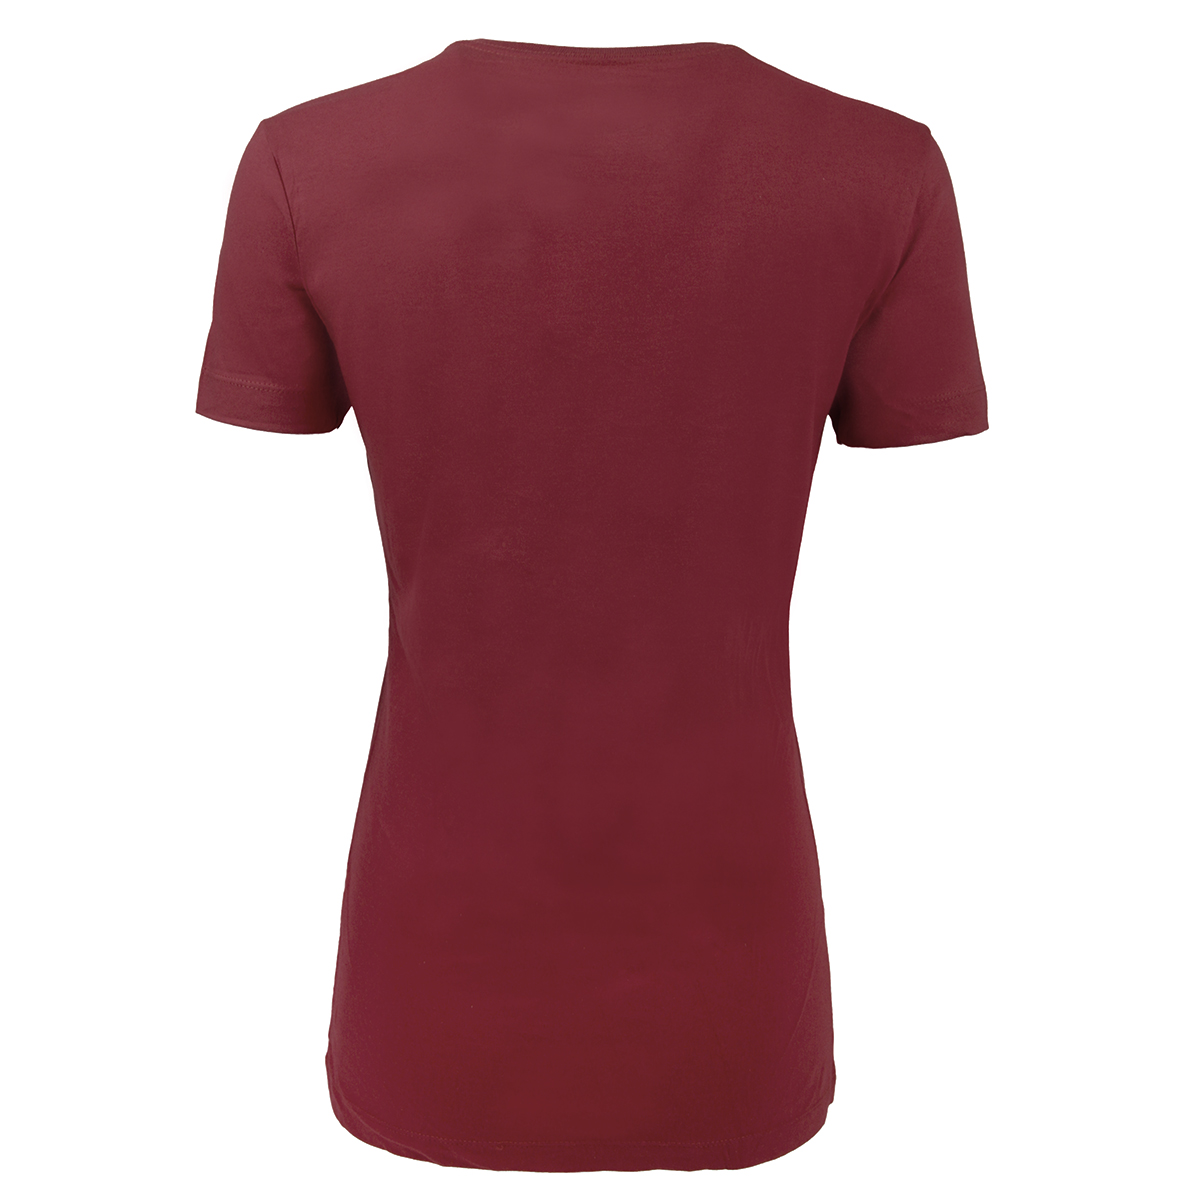 Nike-Women-039-s-Cotton-Loose-Fit-T-Shirt thumbnail 5